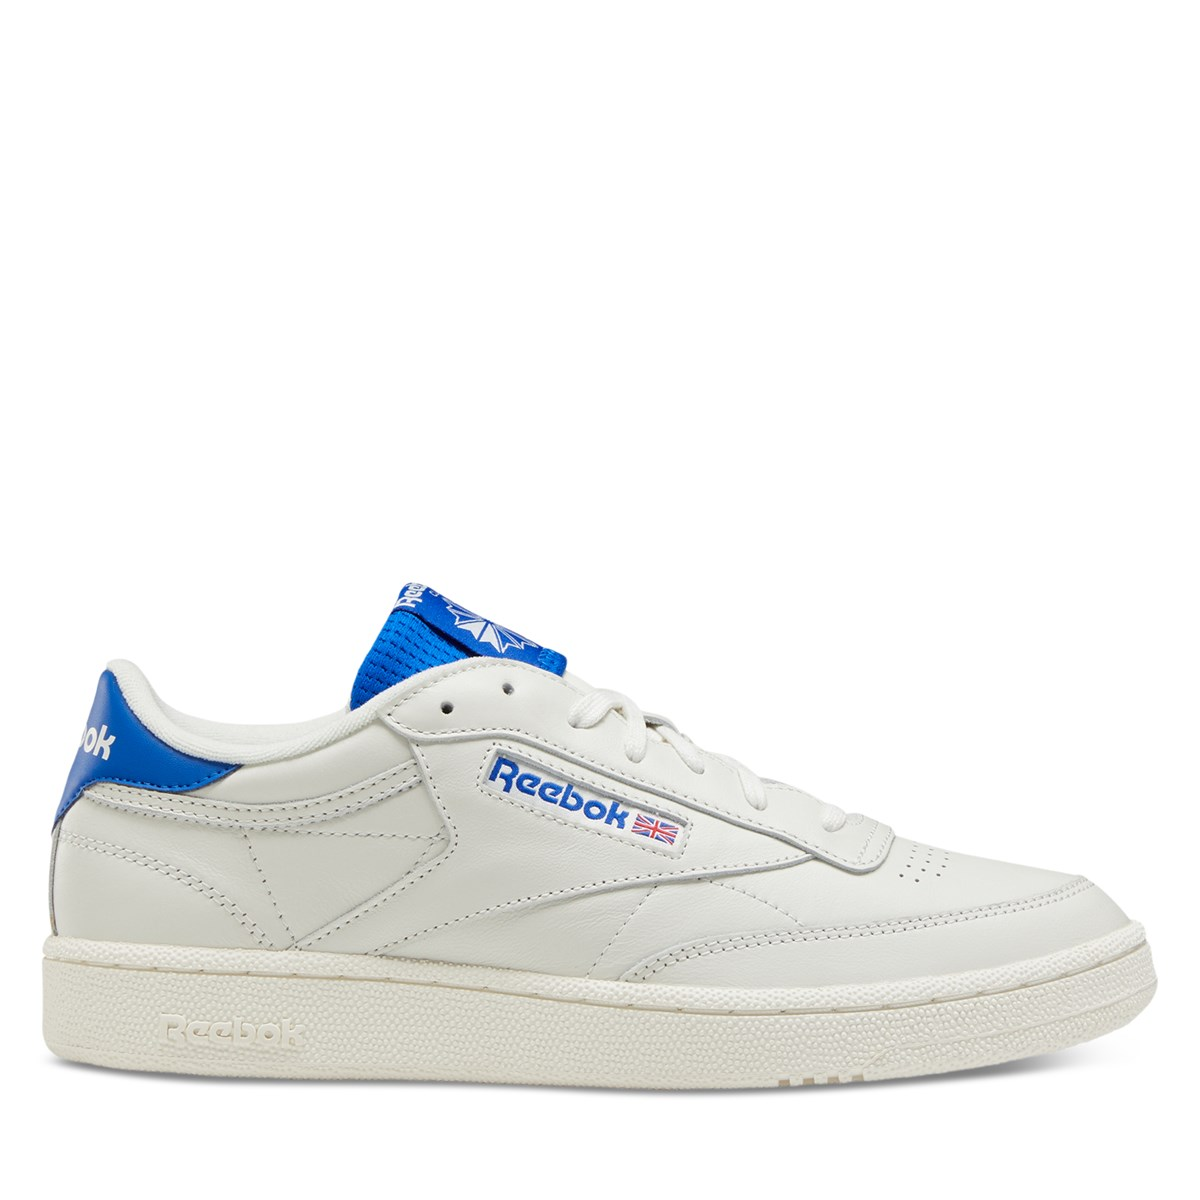 Men's Club C 85 Sneakers in Chalk/Blue